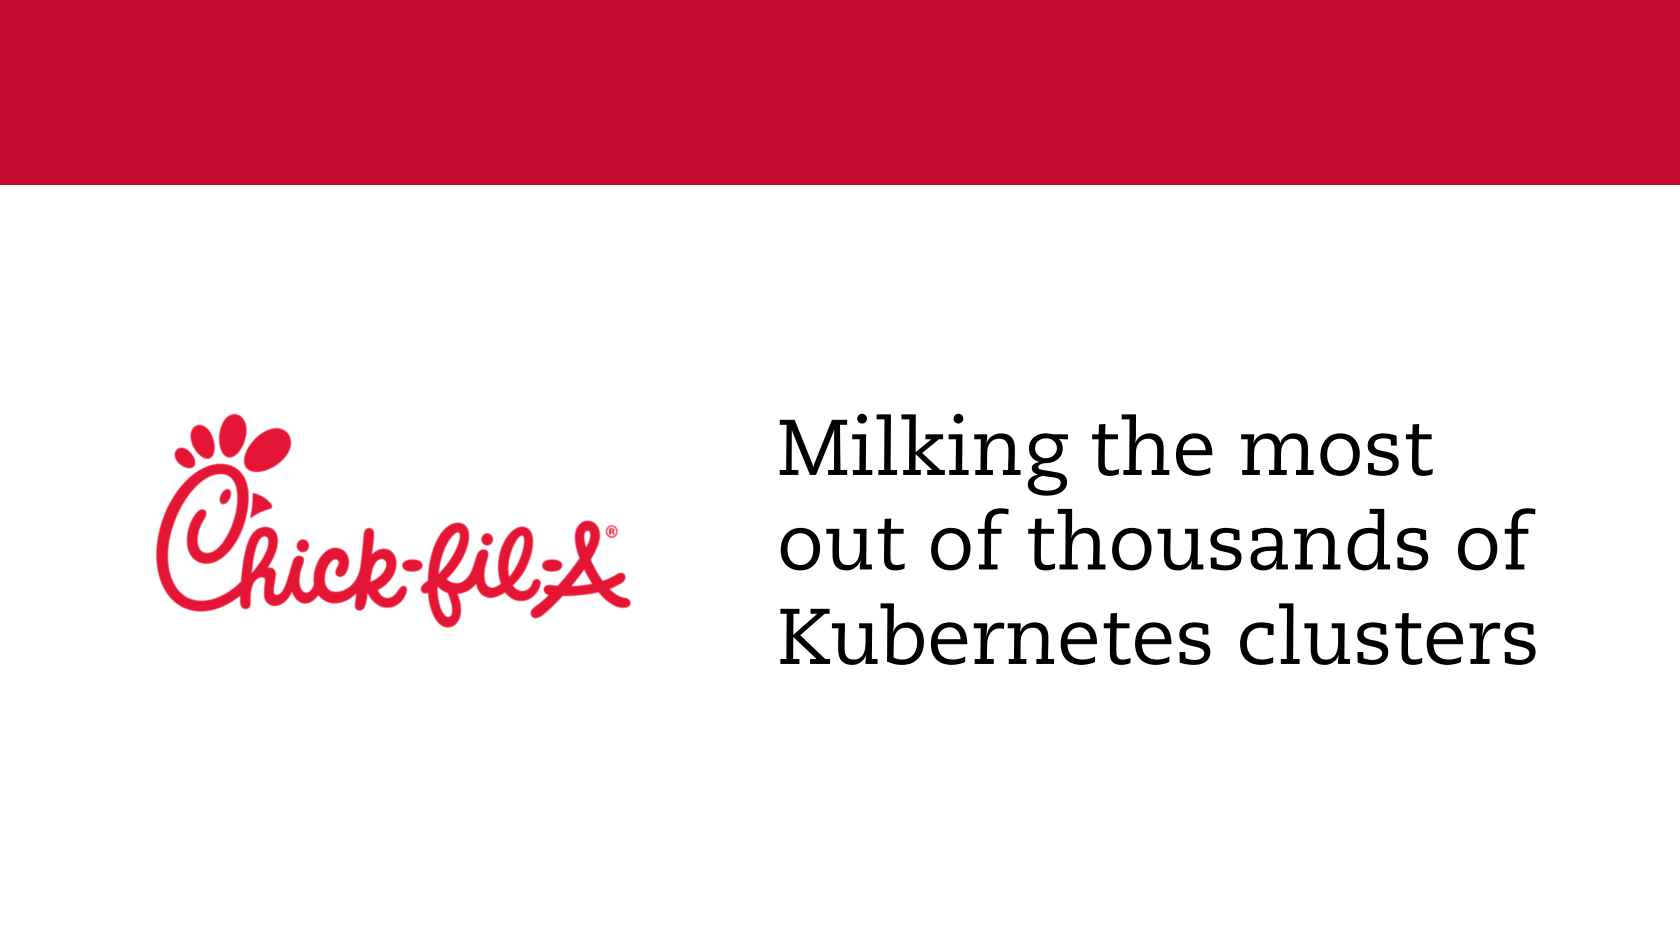 Chick-Fil-A: Milking the Most out of 1000\'s of K8s Clusters